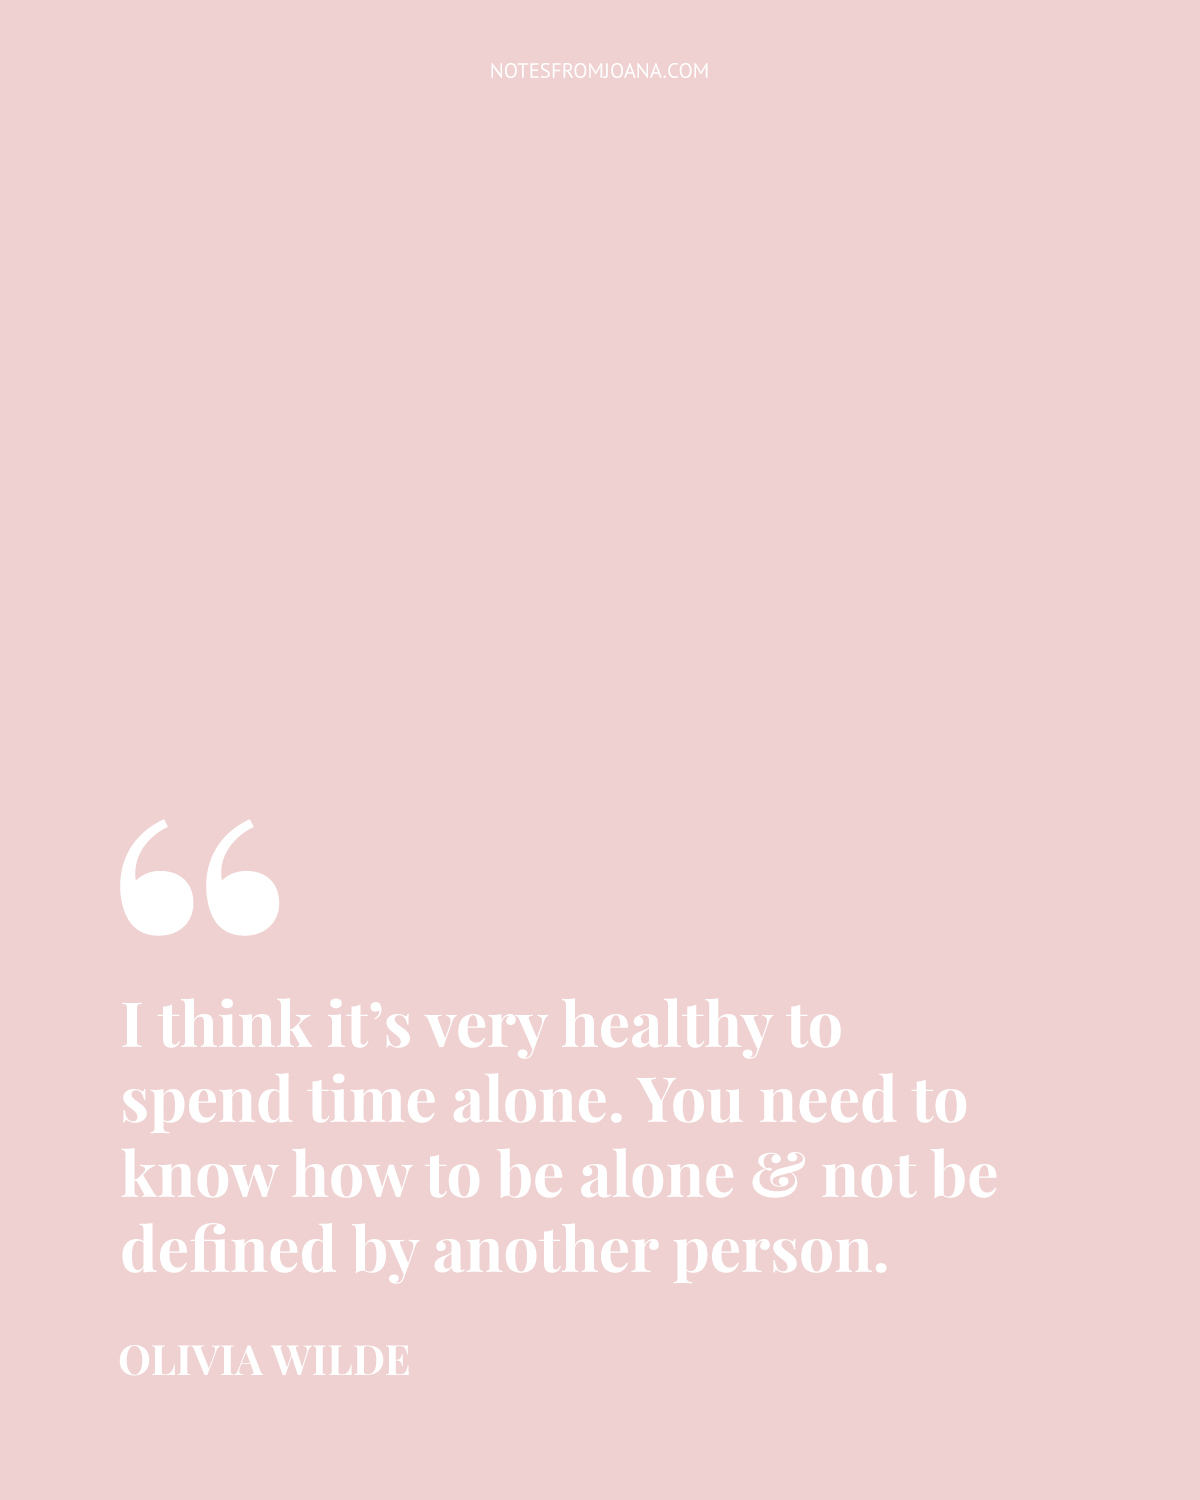 7 Benefits Of Spending Time Alone | Being Alone and Feeling Lonely. #personaldevelopment #selfgrowth #alone Click through to read more!